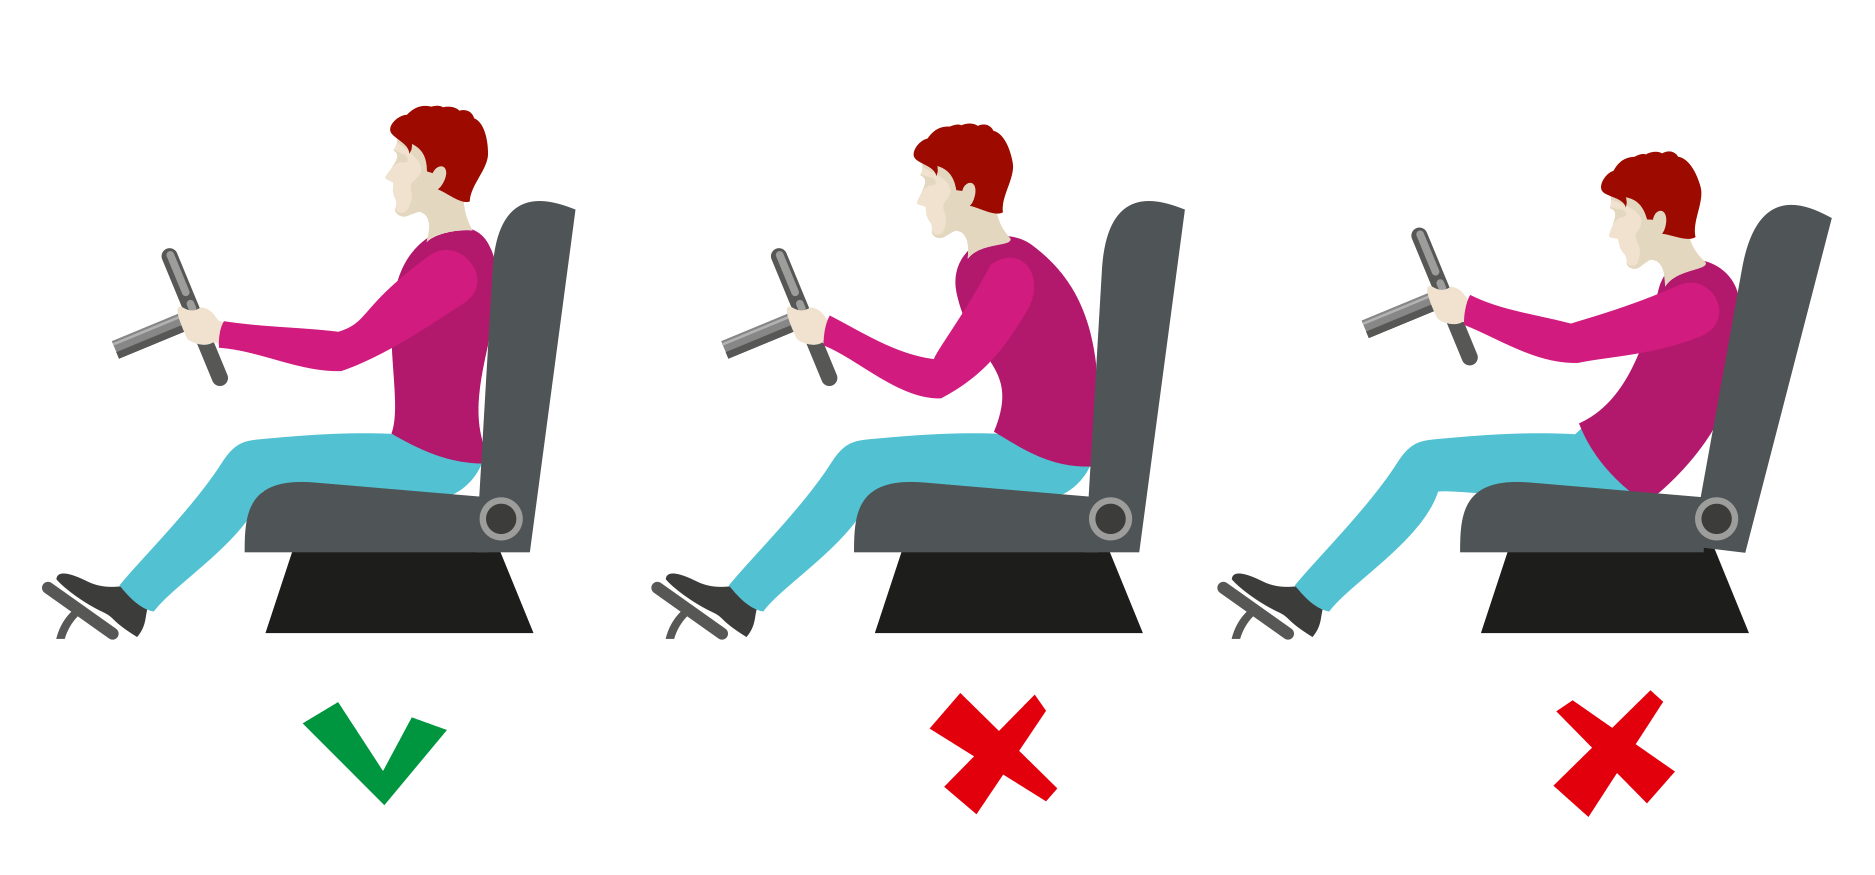 Seating Positions In Car